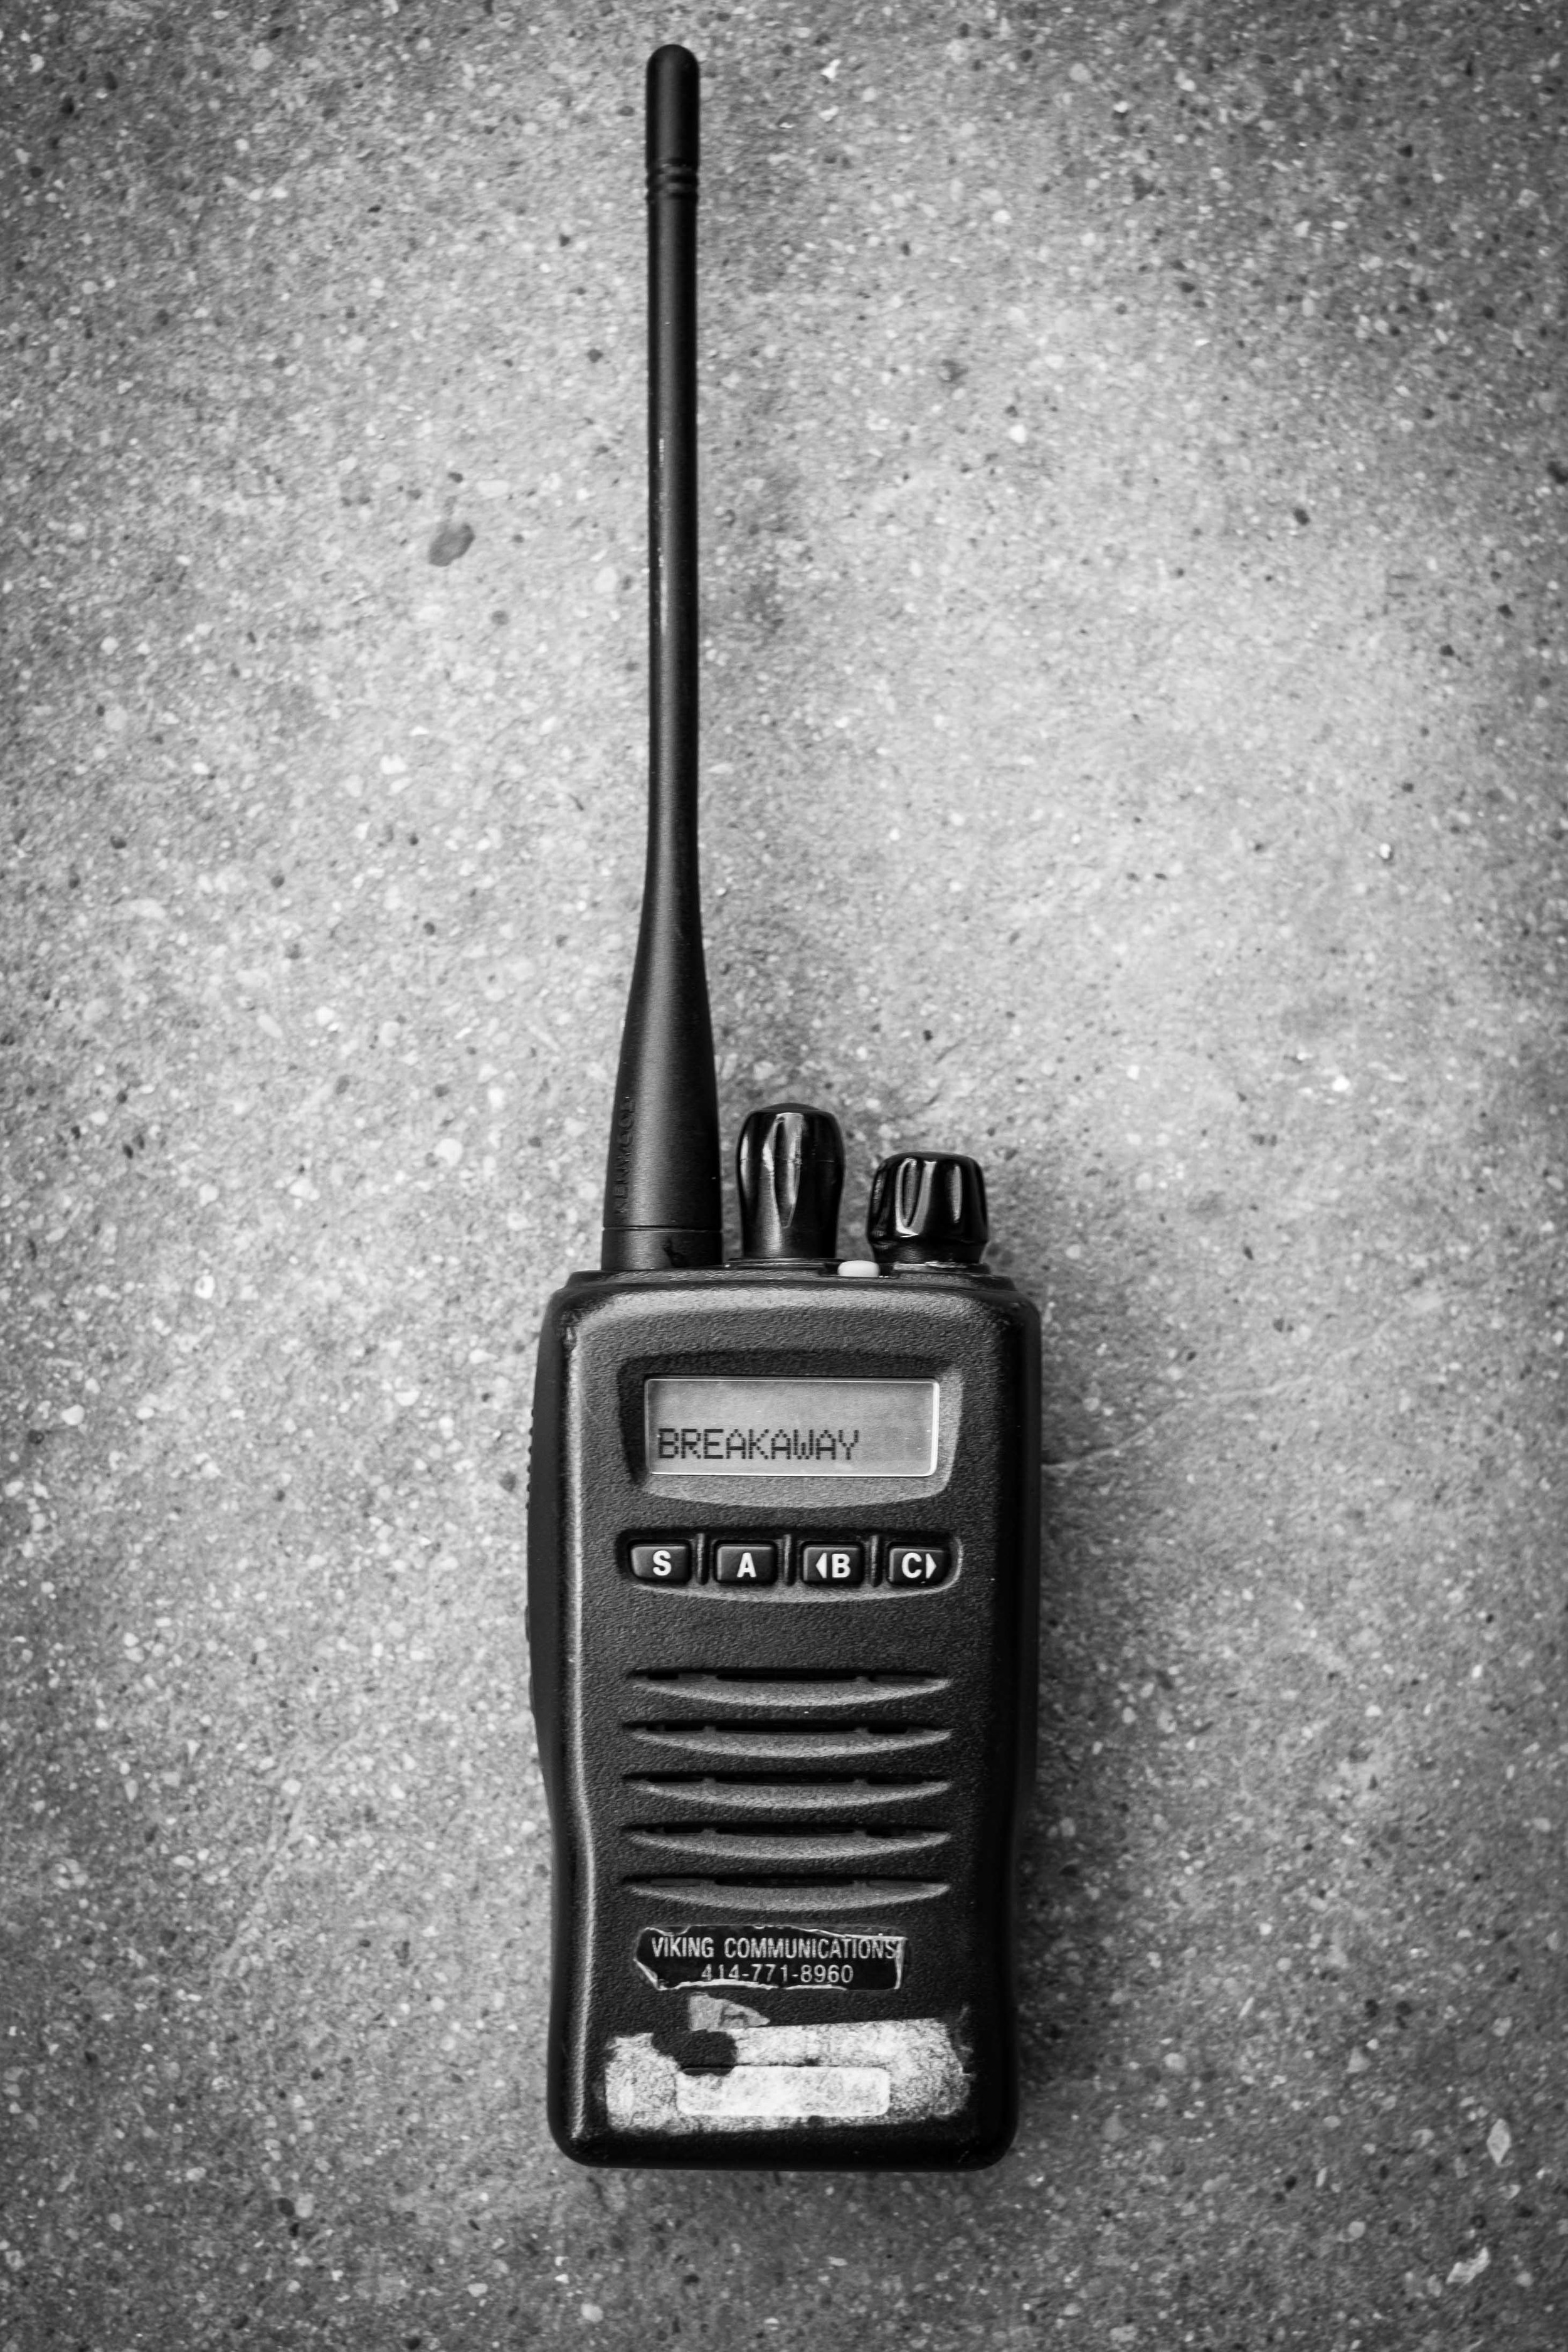 Communication is key. We use an open channel 2-way radio to dispatch our riders. Yes, it's still just as fun as you remember it when you were little.